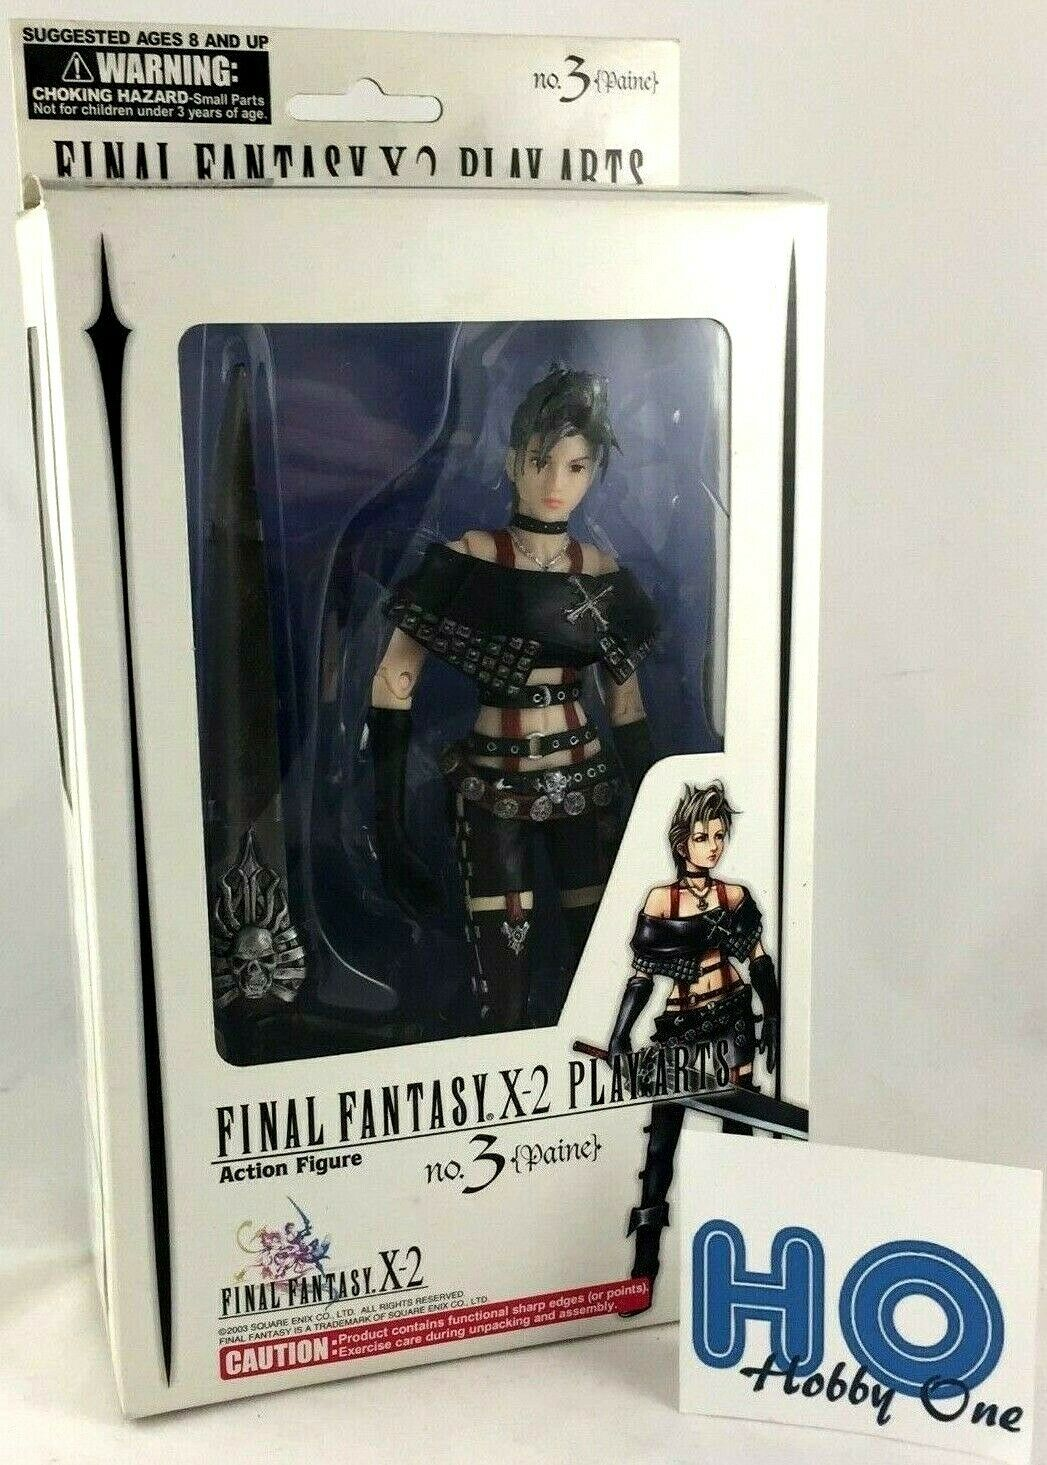 Final Fantasia X-2 - Play Arti - No. 3 Paine - Azione Figura - PVC - Ff